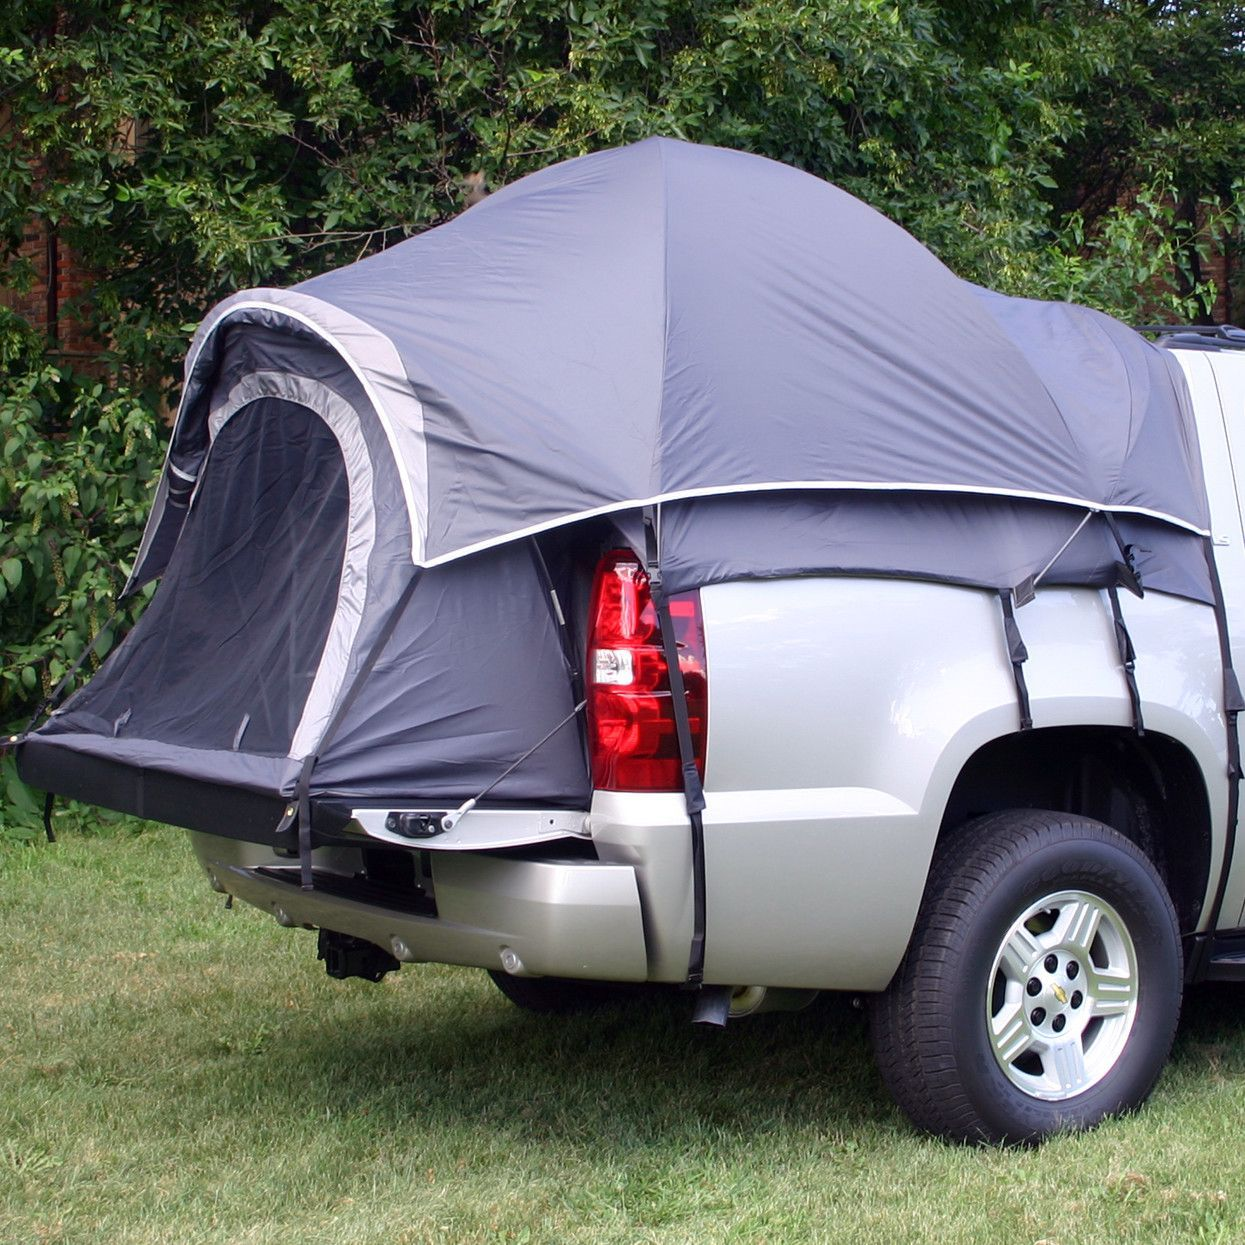 Sportz Truck Tent for Chevy Avalanche & Sportz Truck Tent for Chevy Avalanche | Camping | Pinterest ...